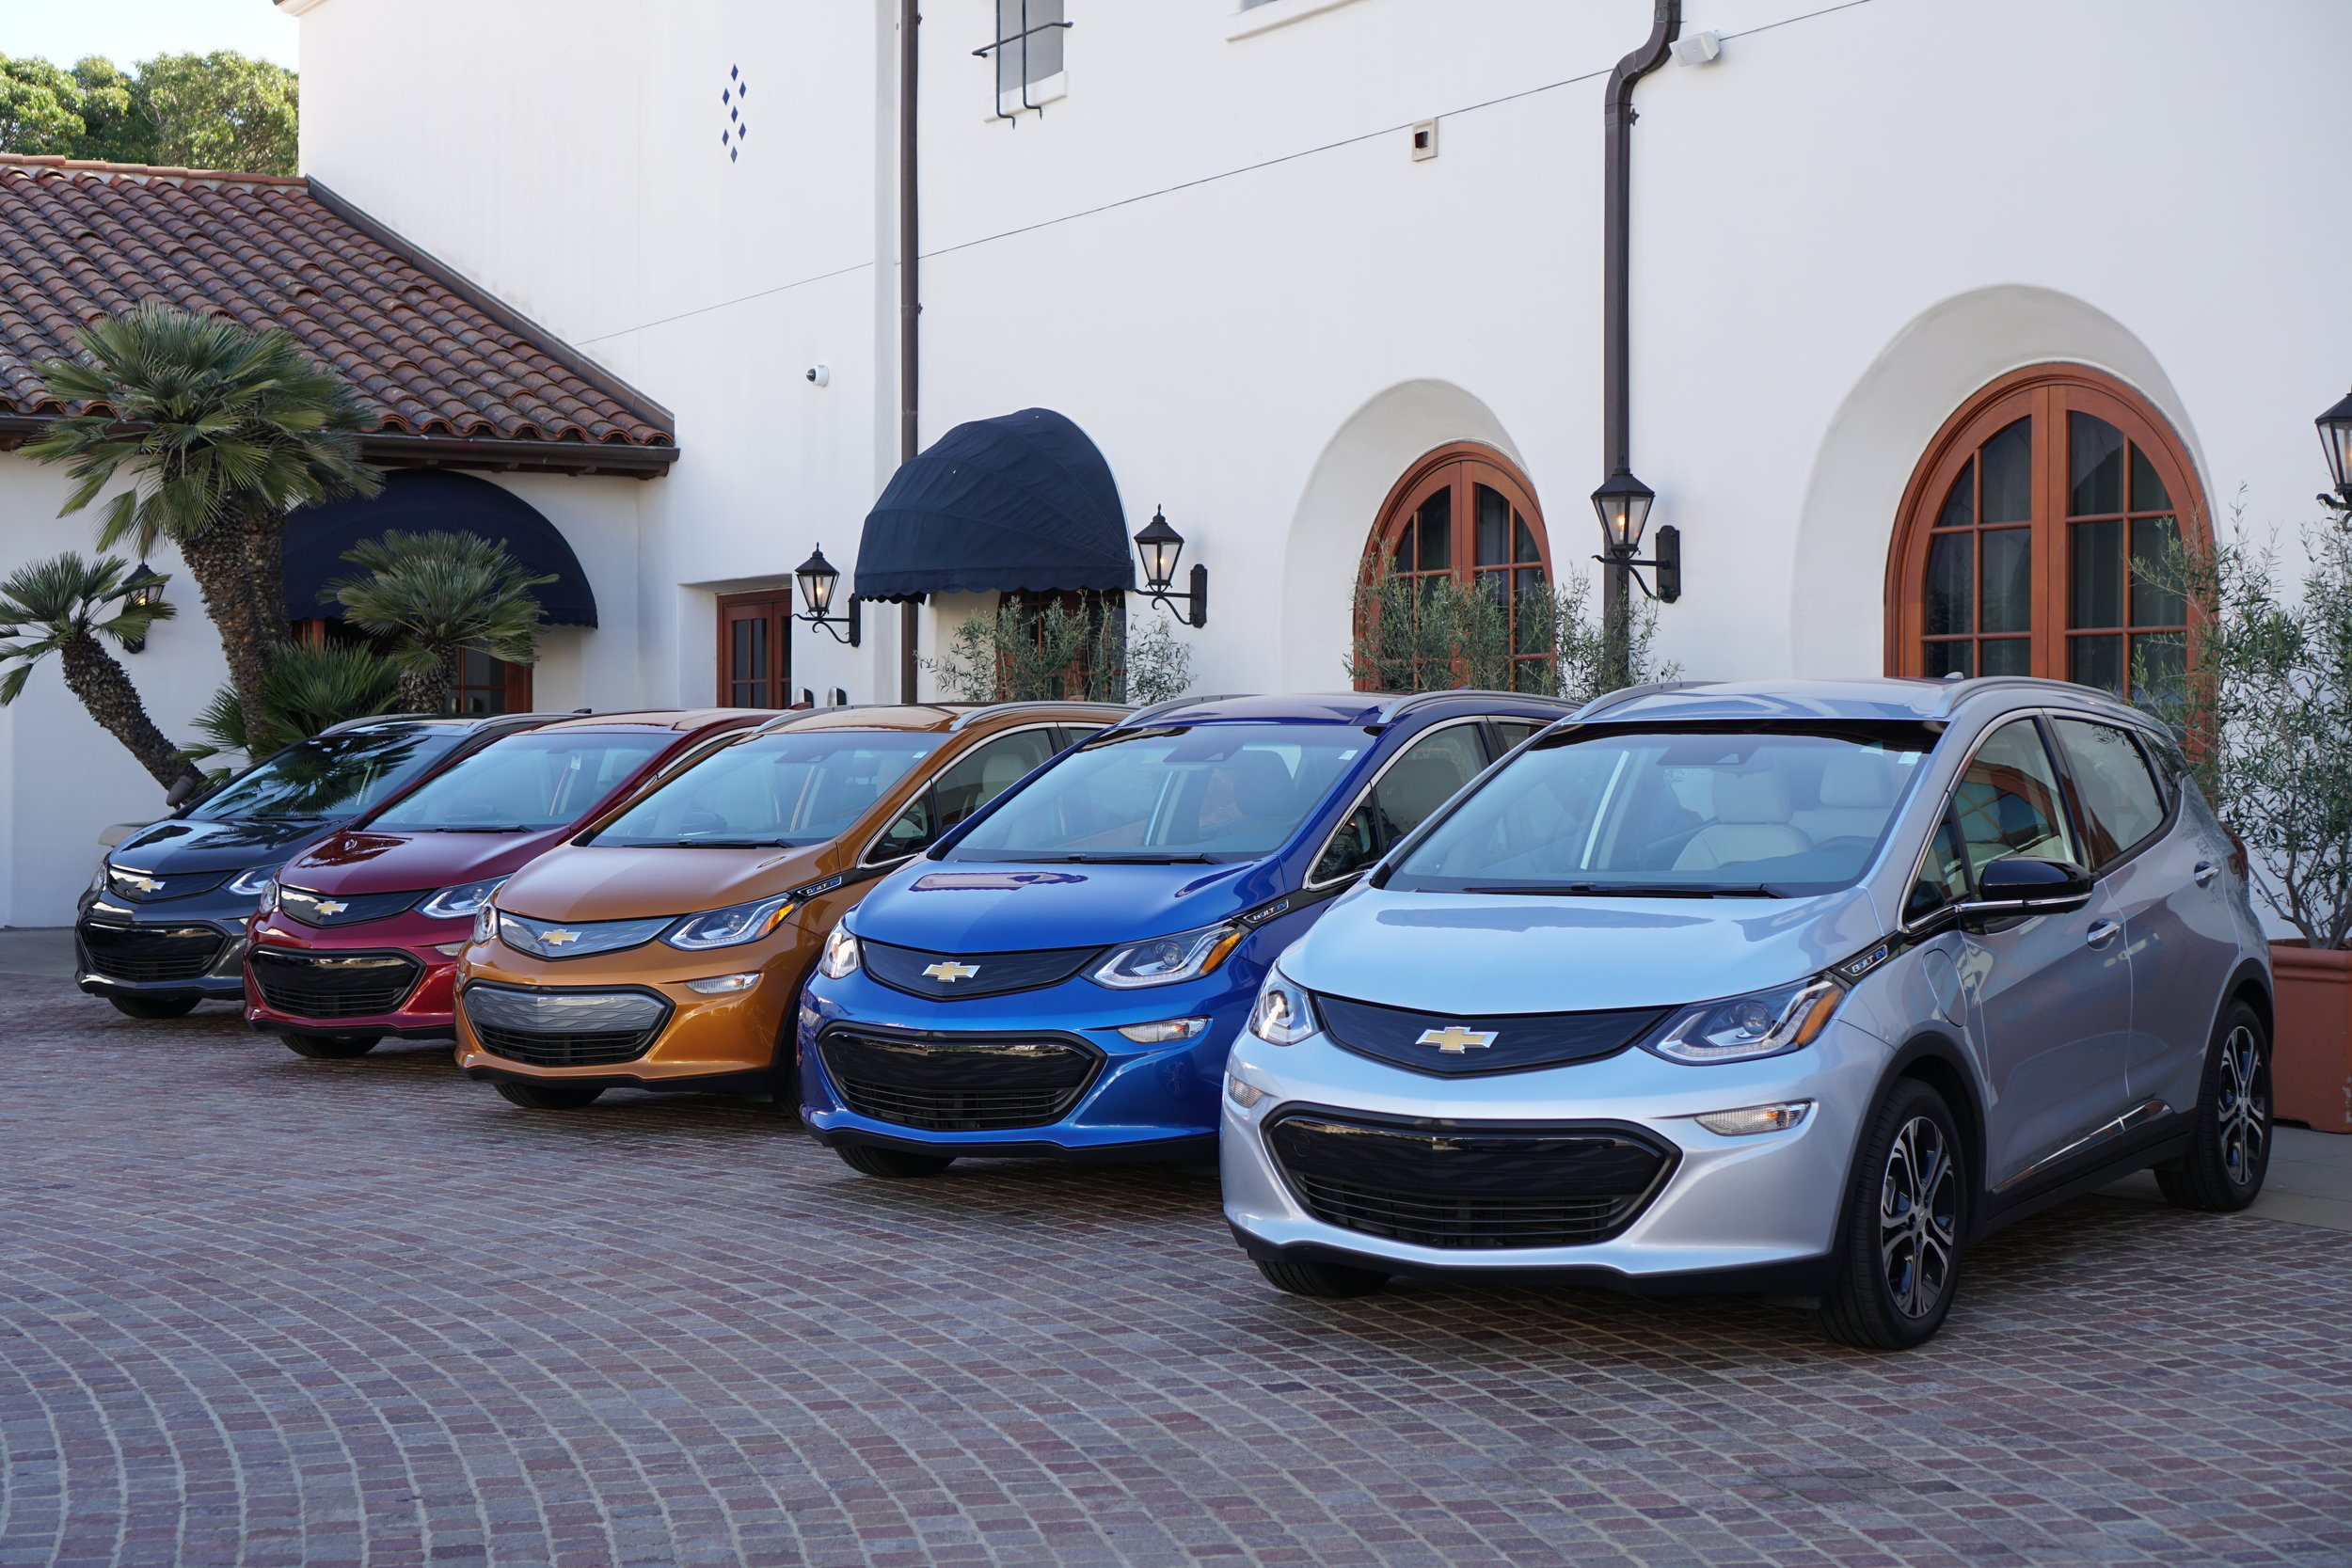 The Chevrolet Bolt EV's in different colors waiting for their drivers at the Bacara Resort & Spa press getaway.